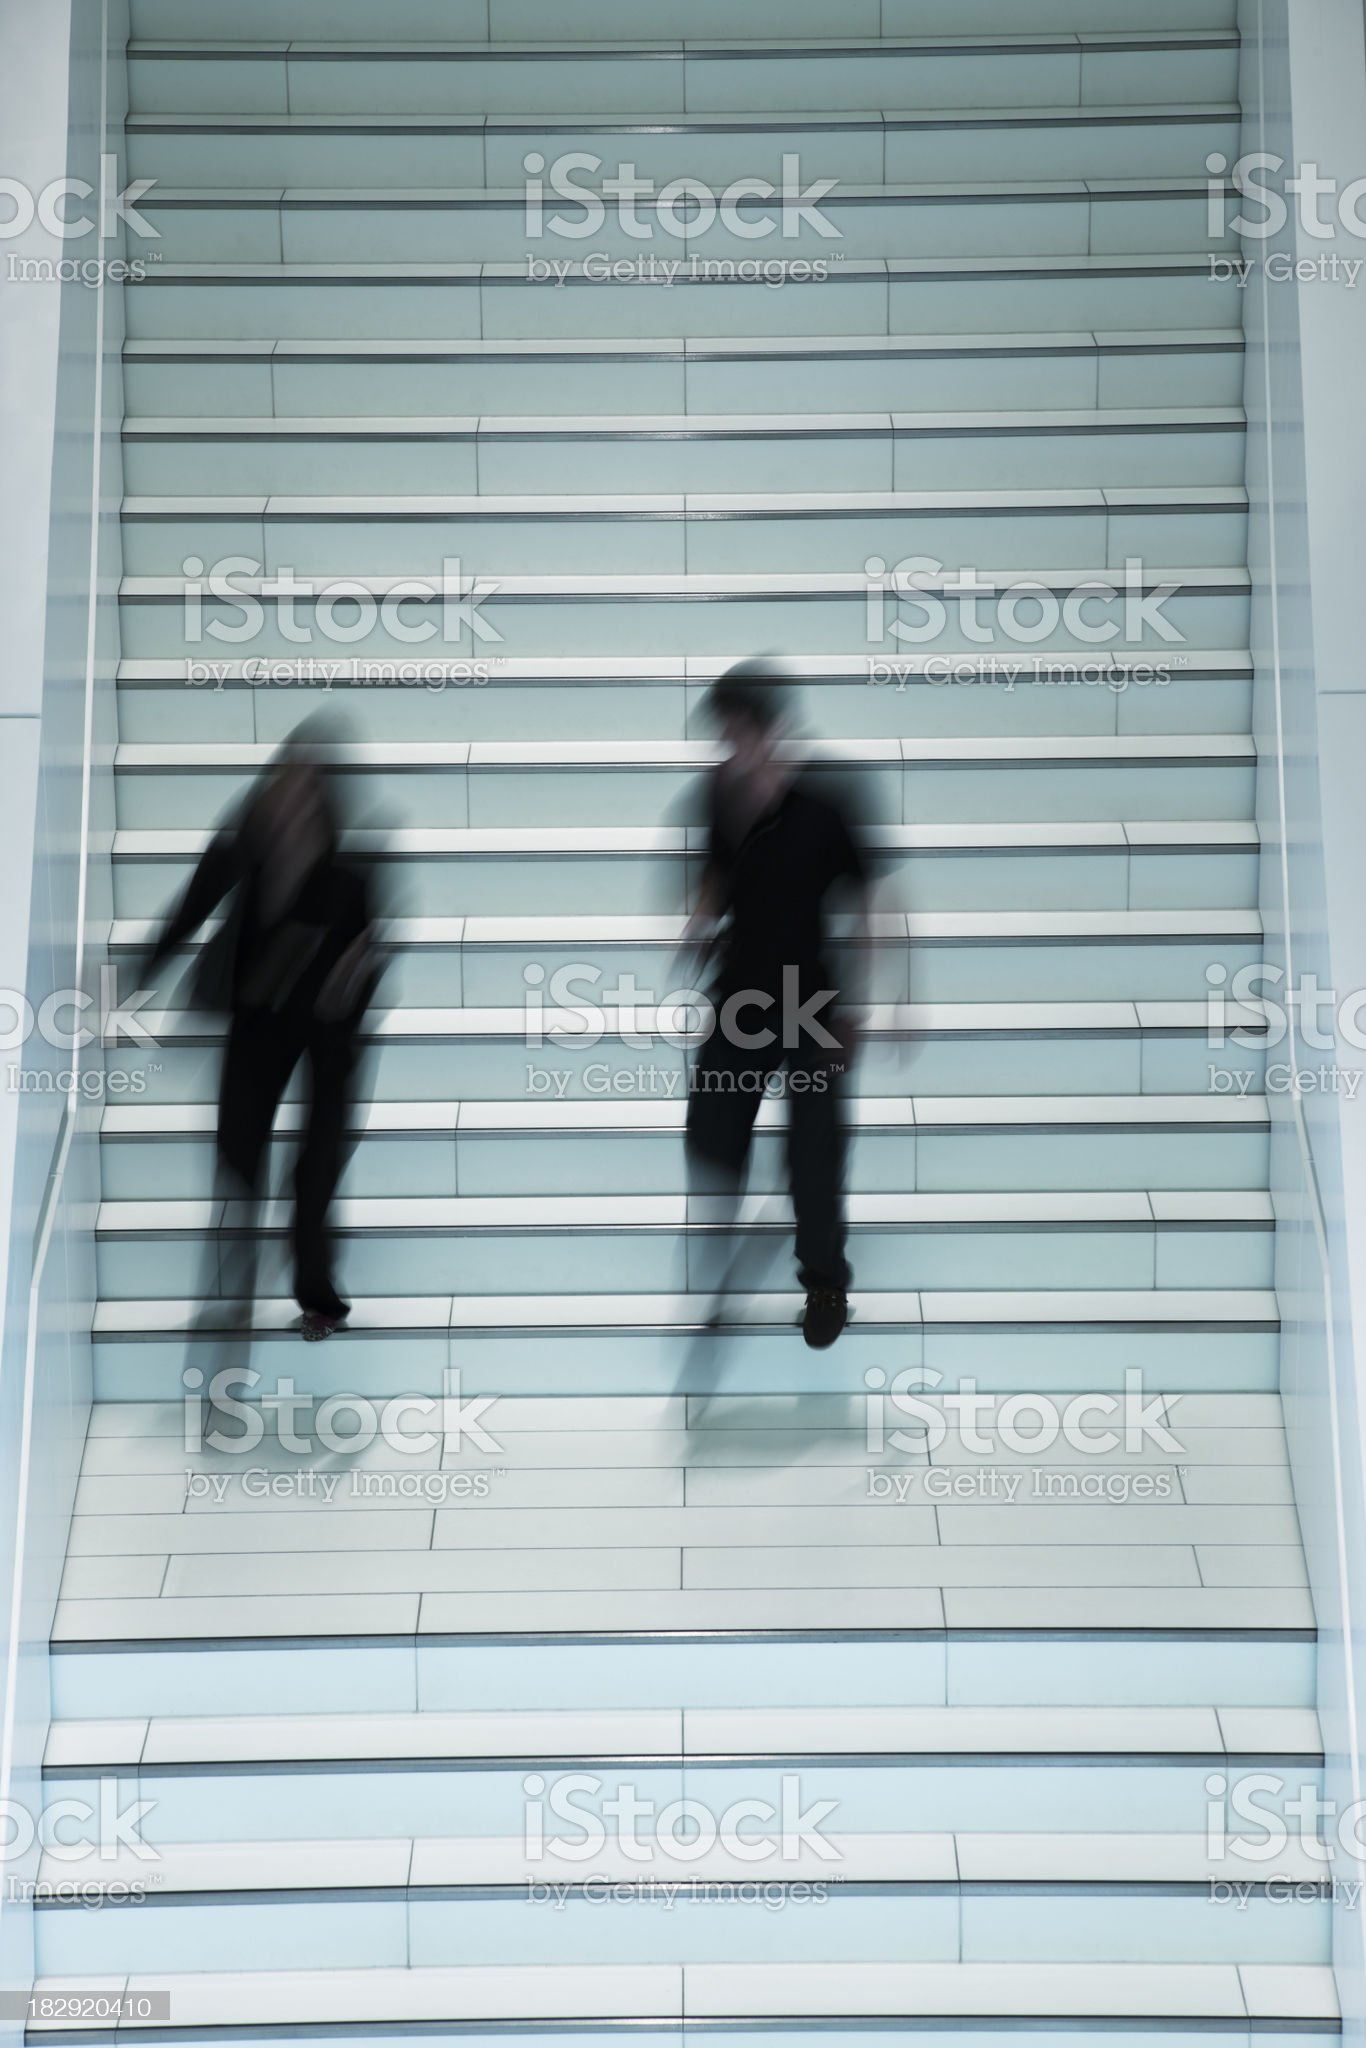 Blurred People on Stairs royalty-free stock photo